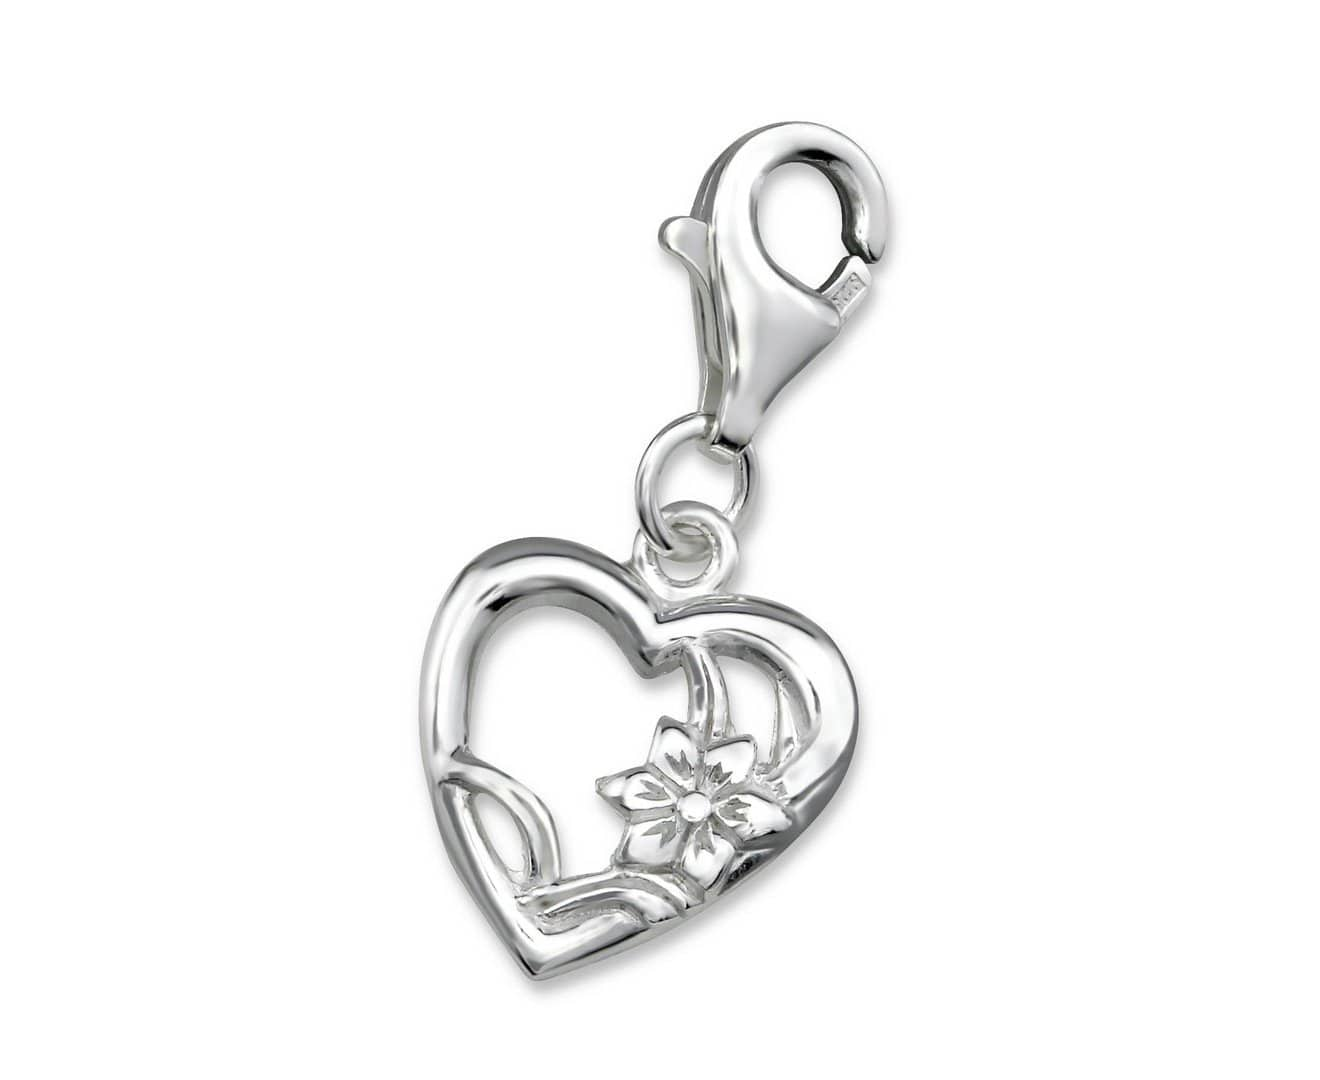 Sterling Silver Heart Charm With Lobster